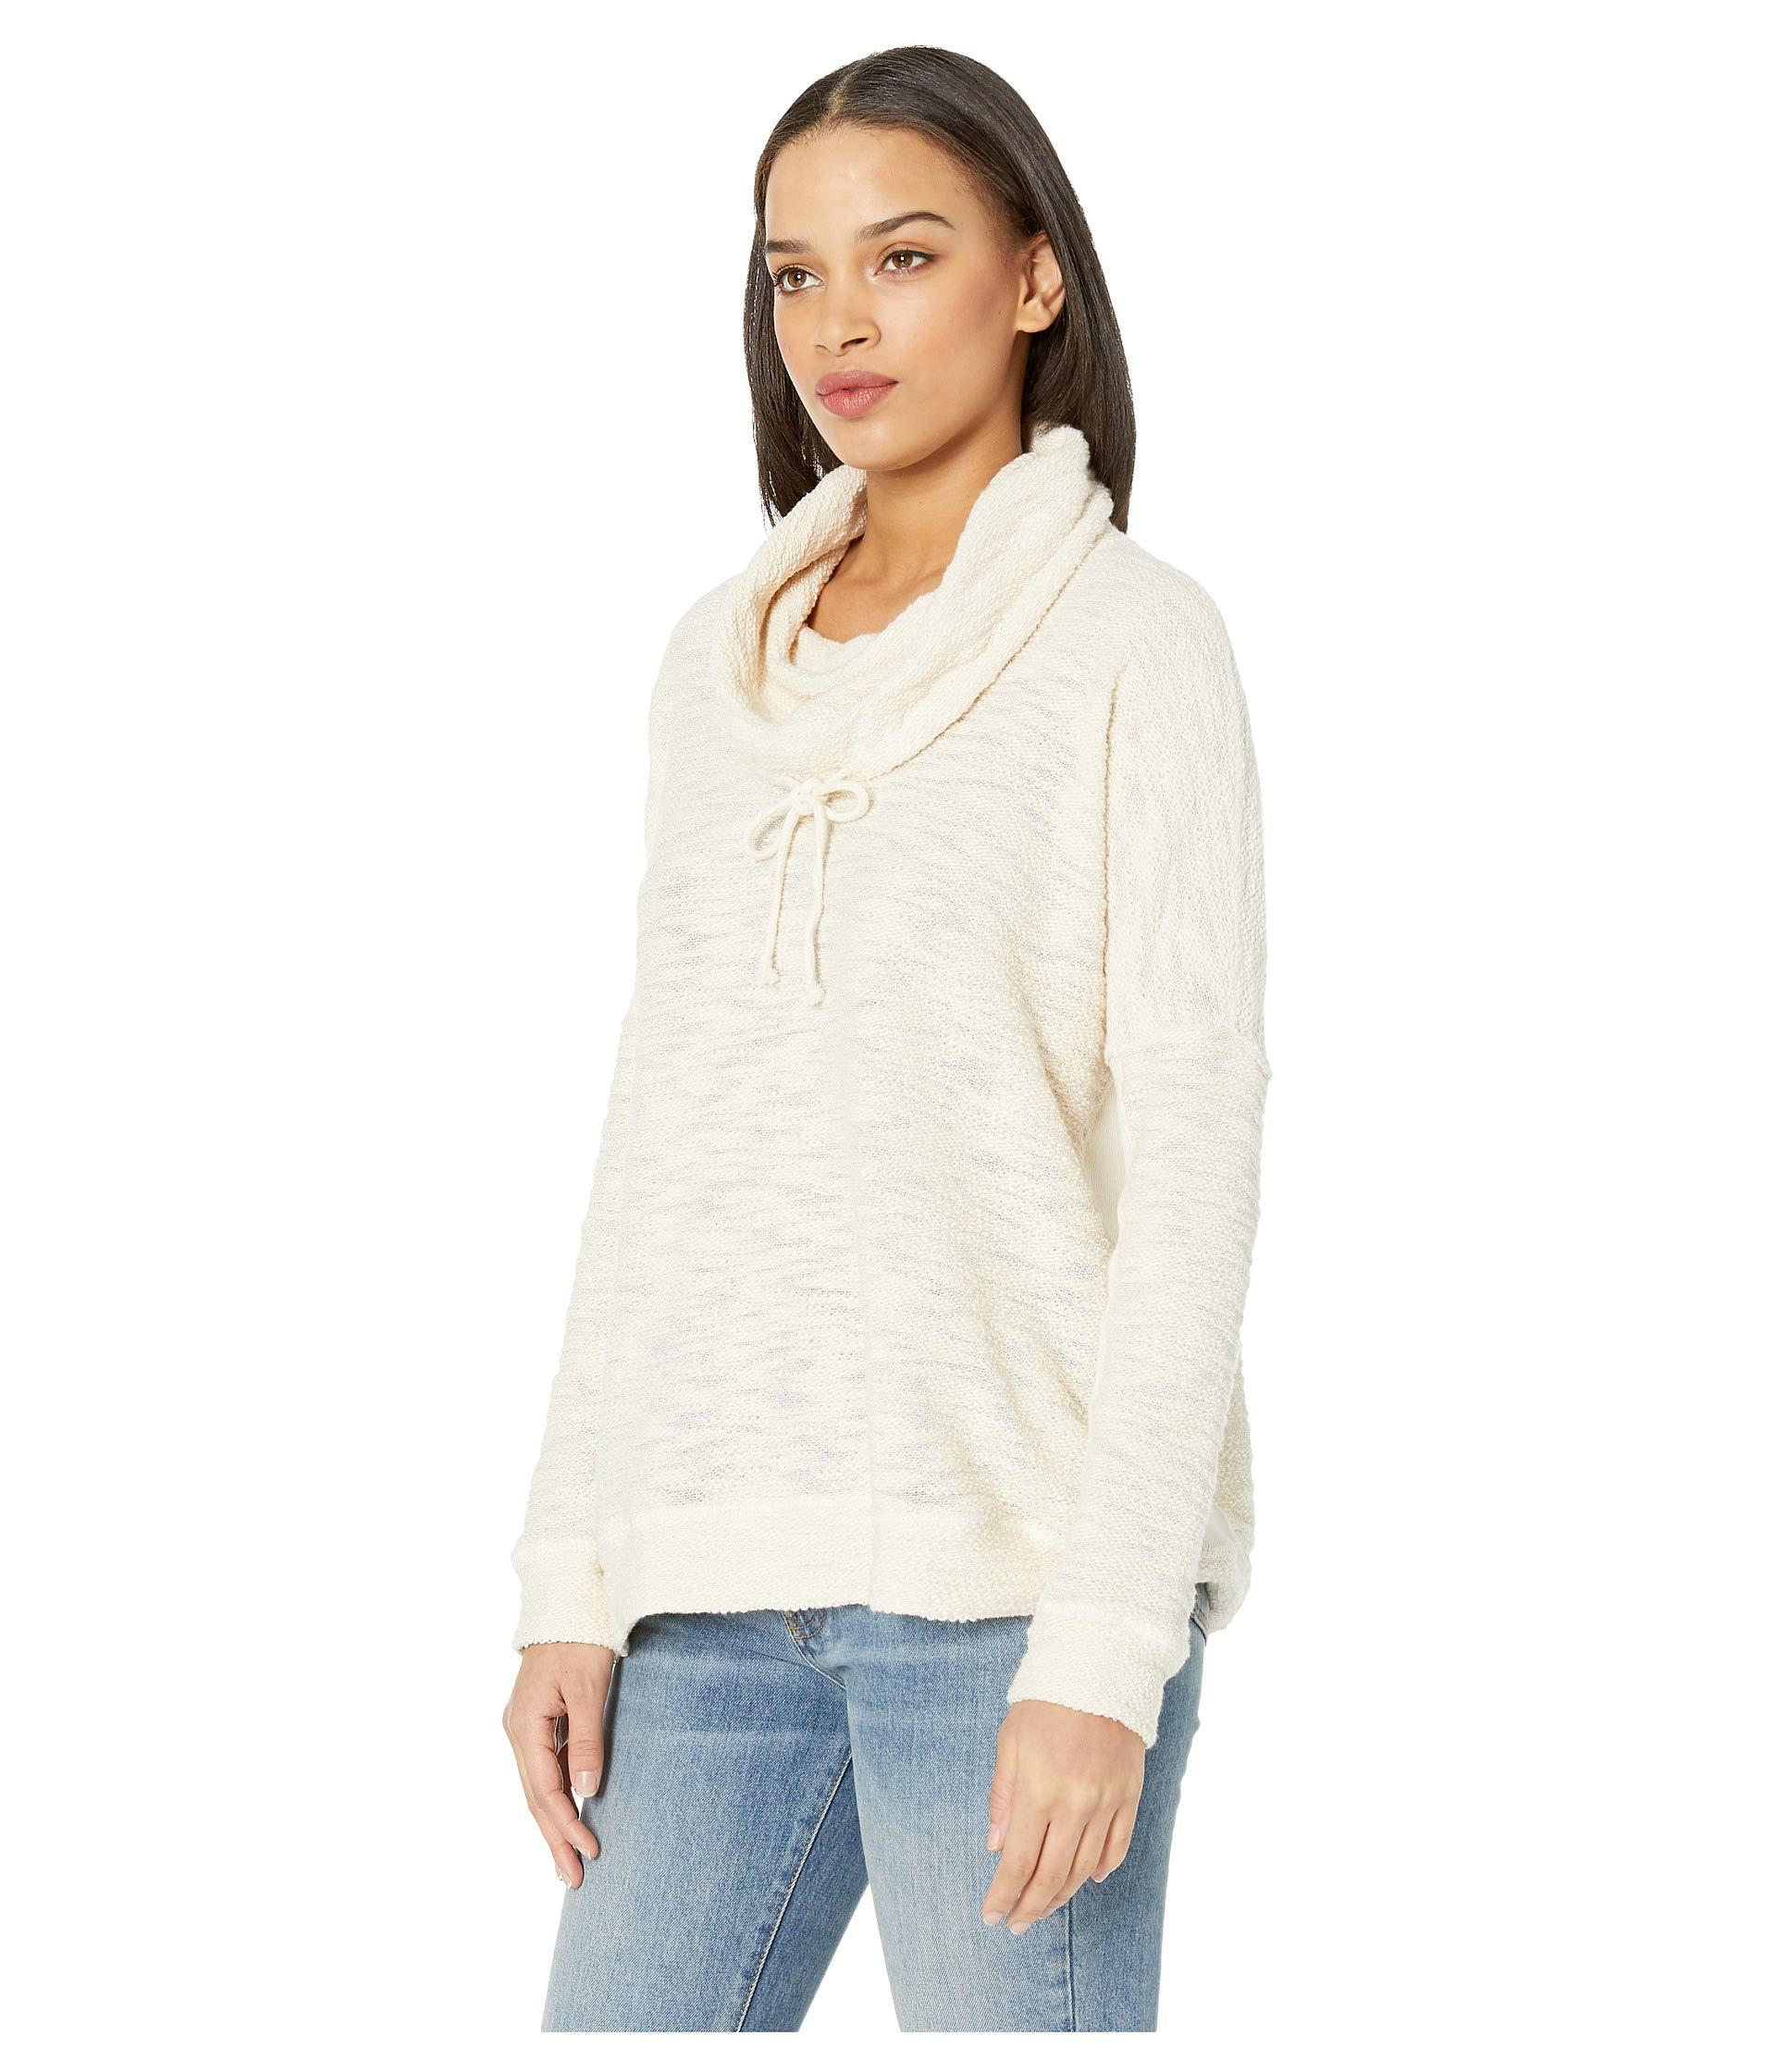 Jack Womens at Your Leisure Slub French Terry Cowl Neck